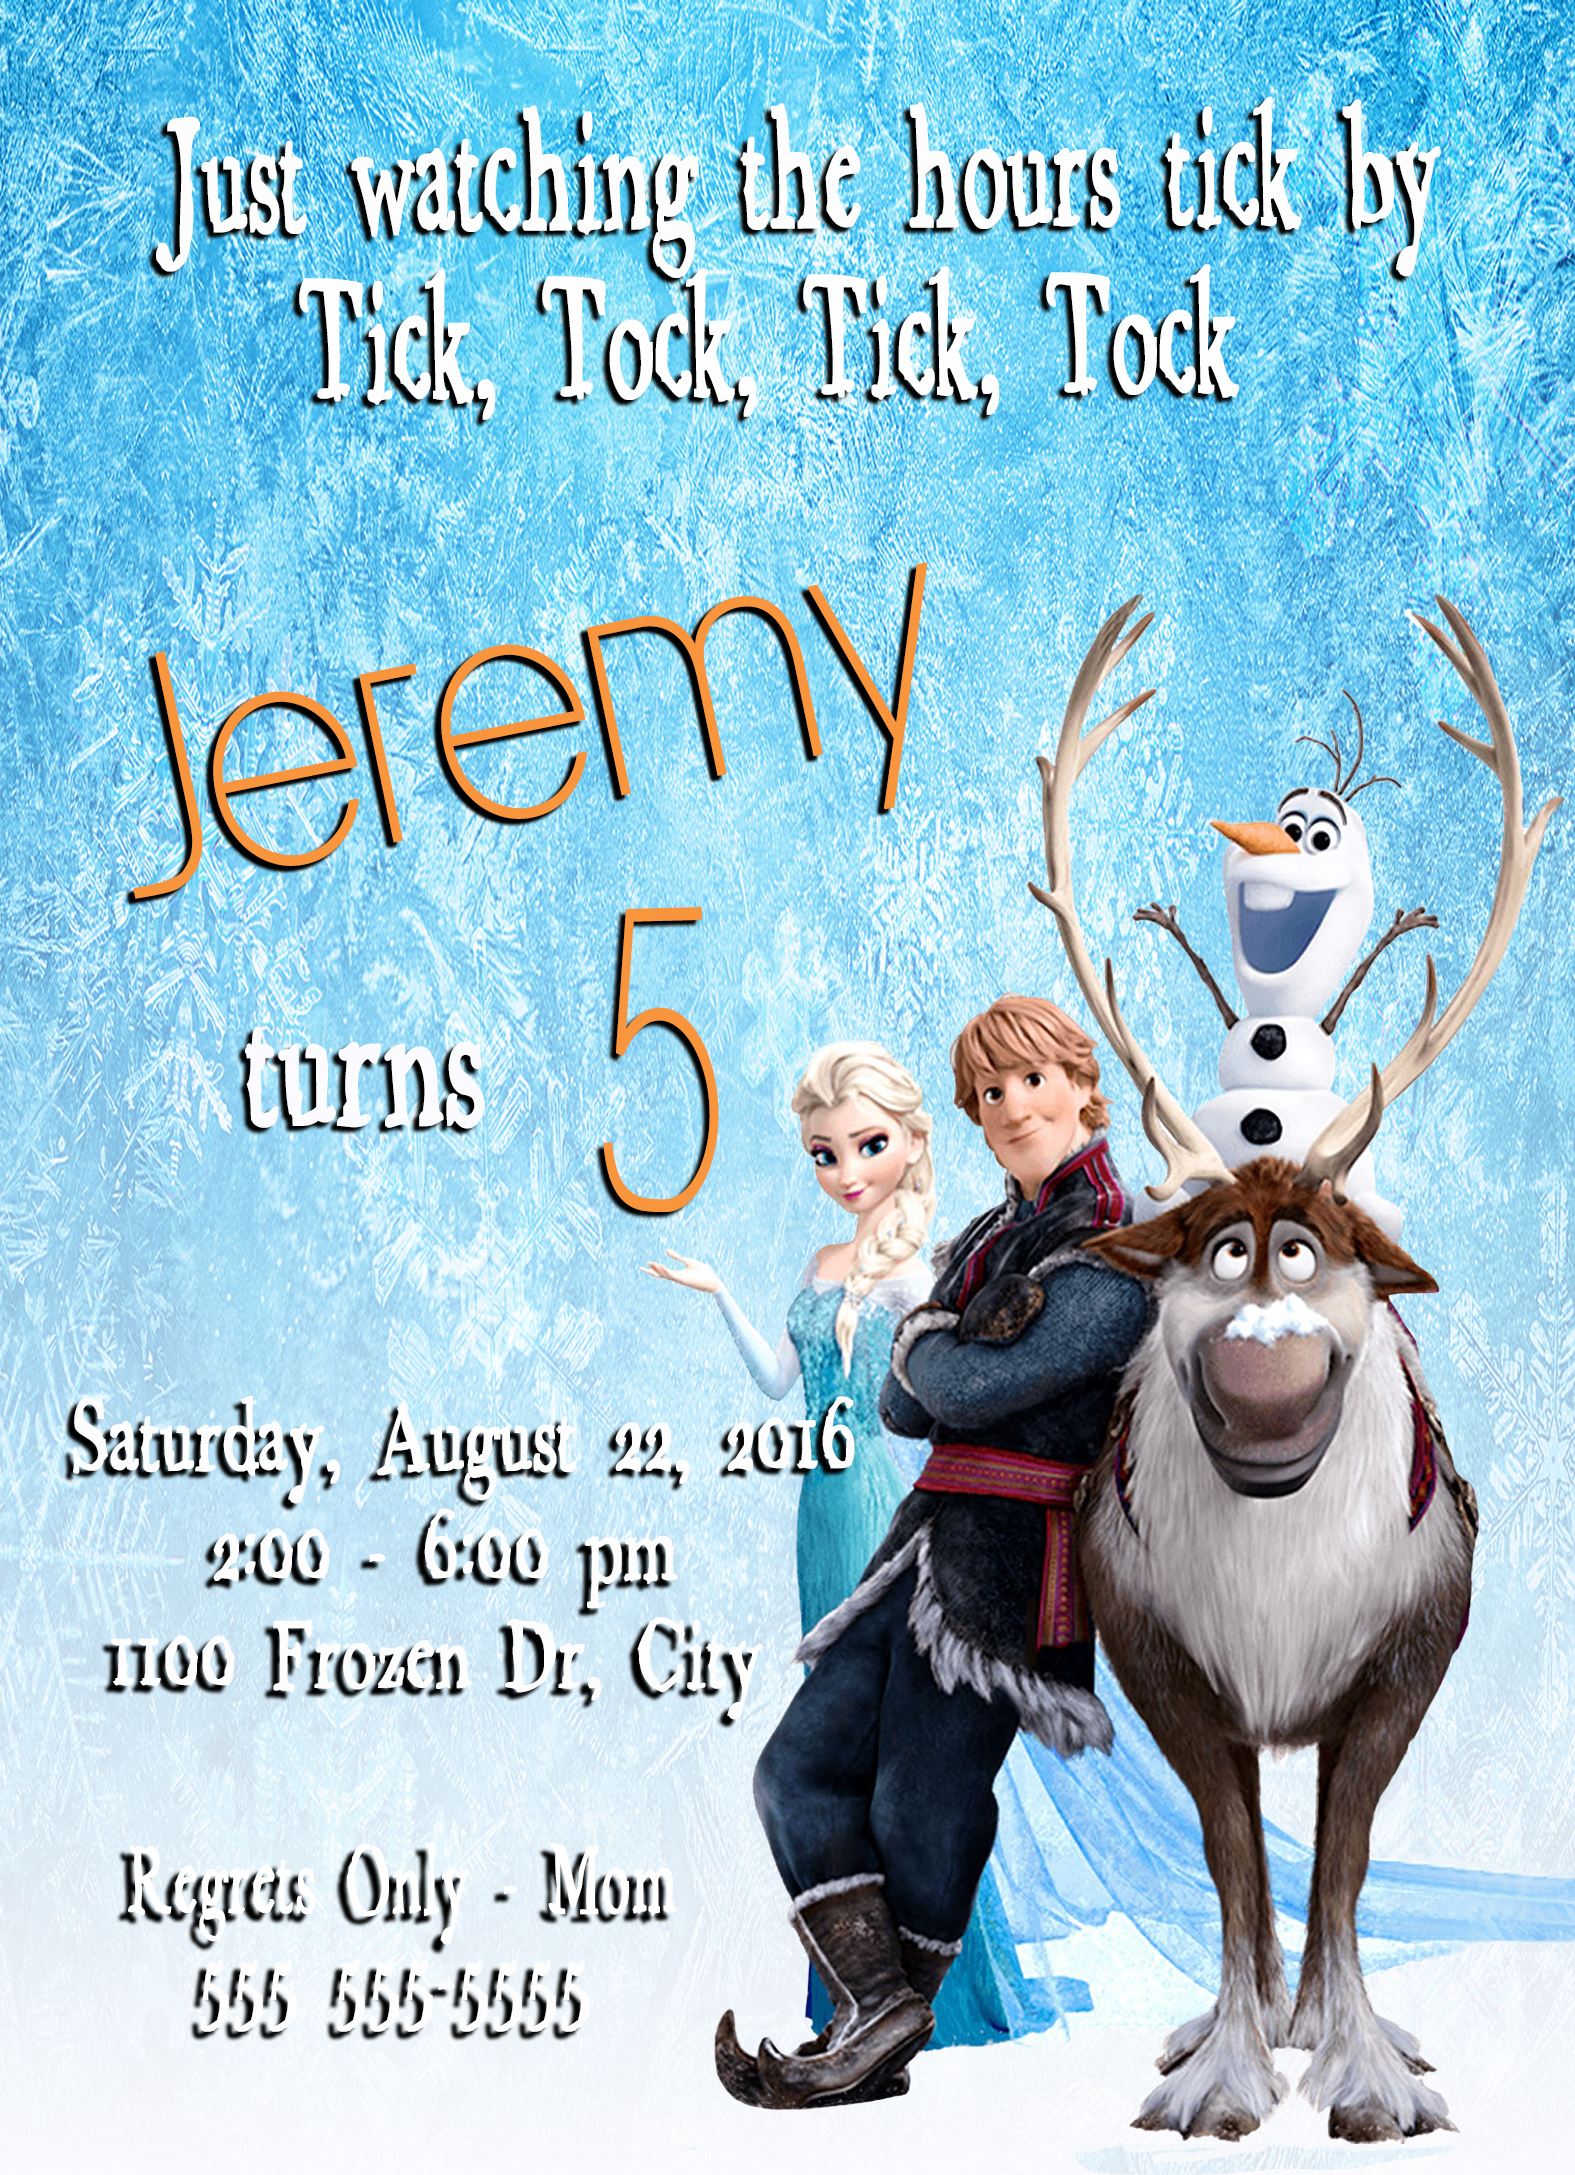 Frozen Personalized Birthday Invitation 2 Sided Birthday Card Party Invitation Frozen Party Olaf Party Sold By Scg Designs